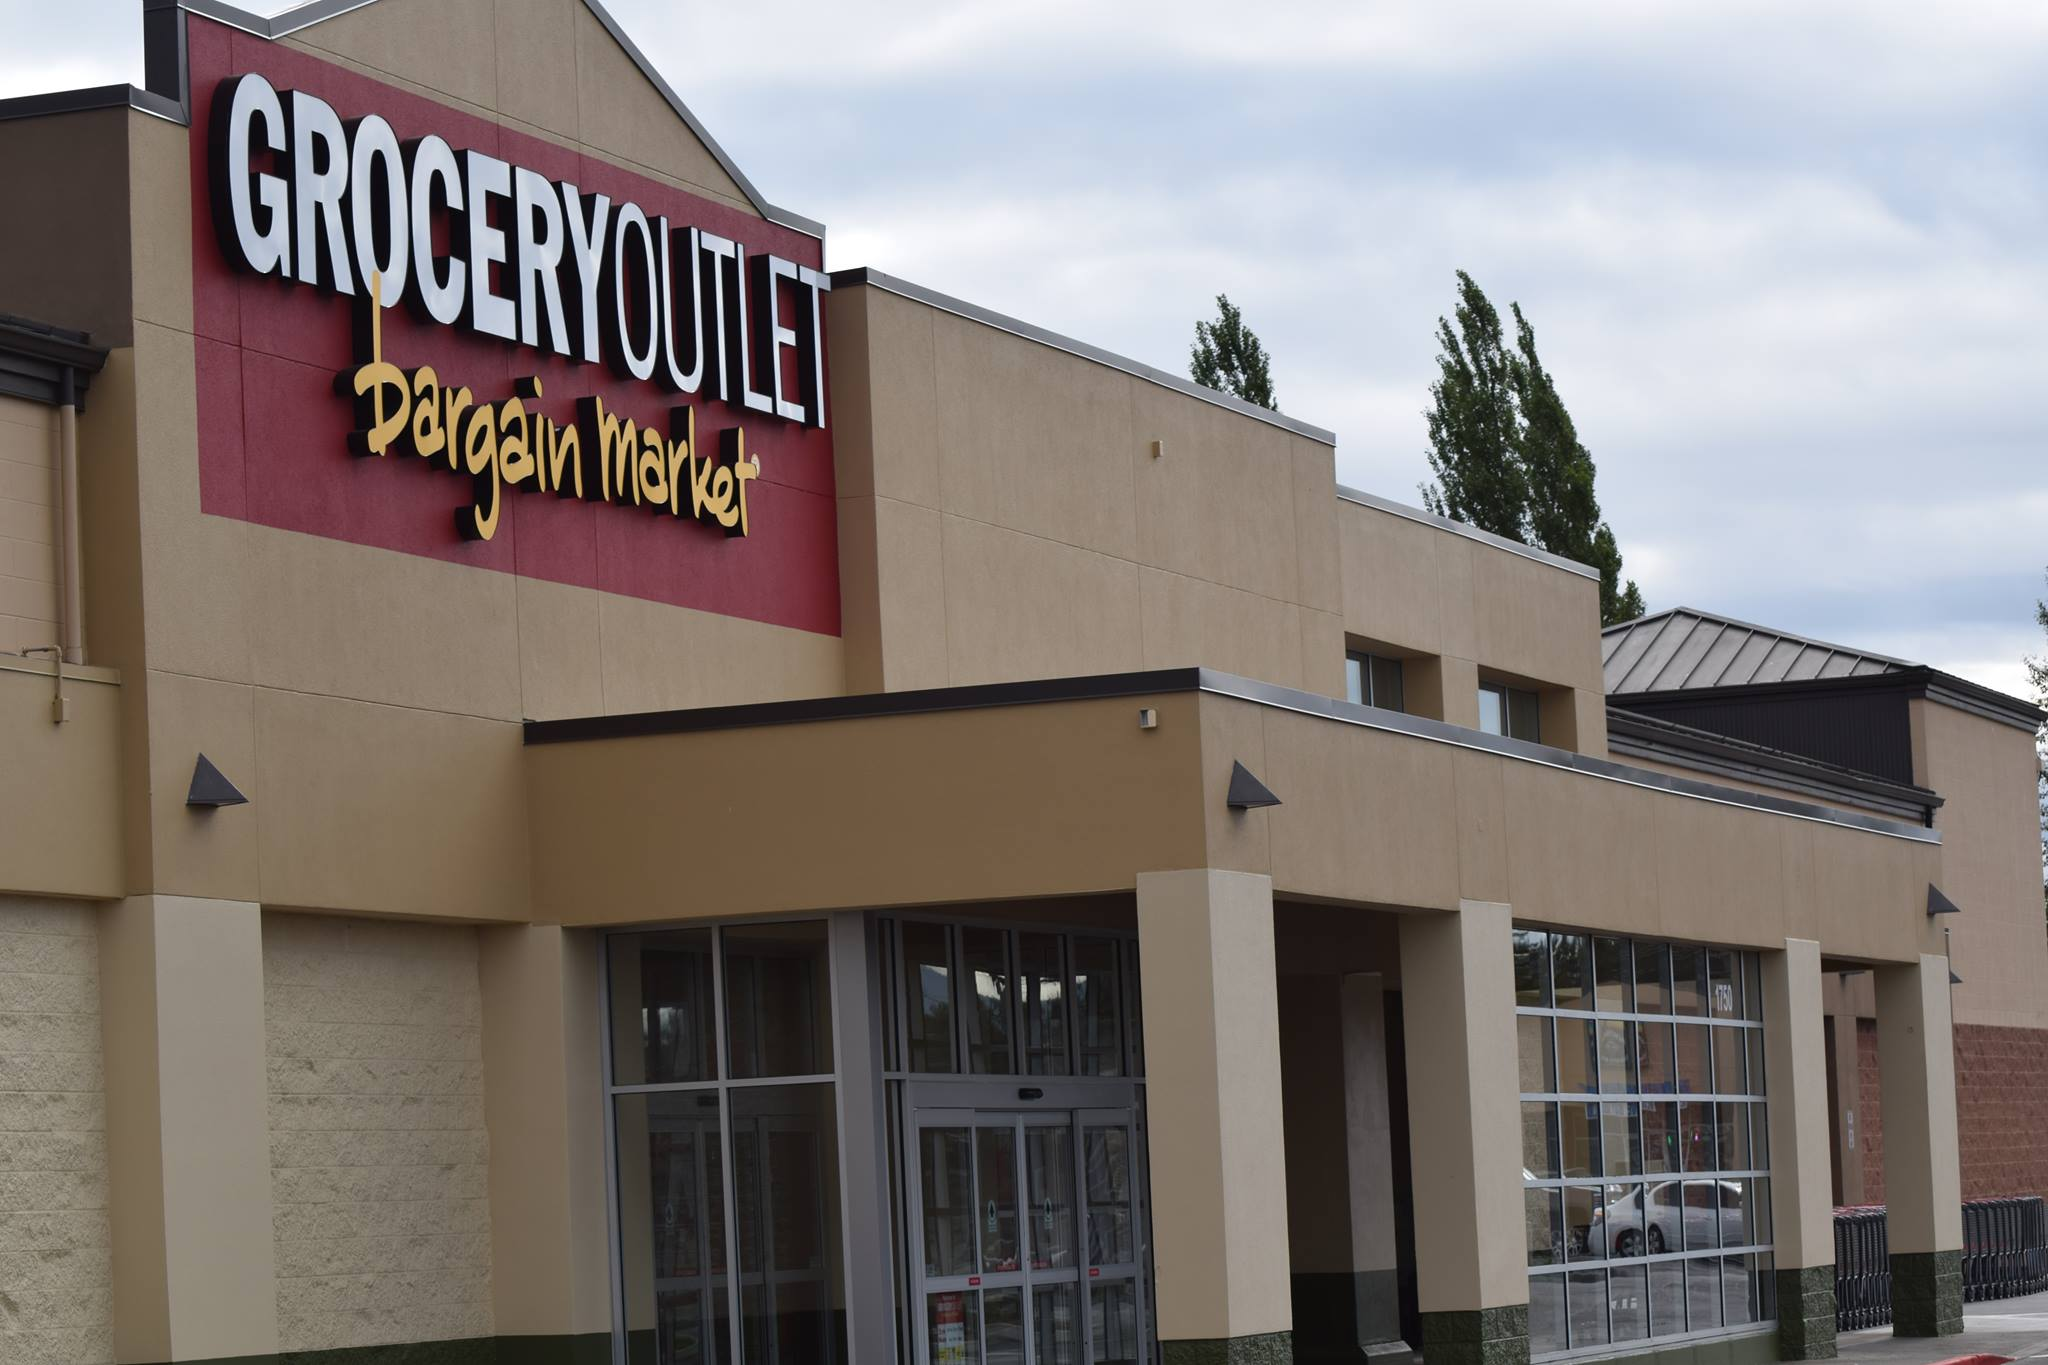 Ferndale Grocery Outlet exterior (July, 22, 2019). Photo courtesy of Ferndale Grocery Outlet